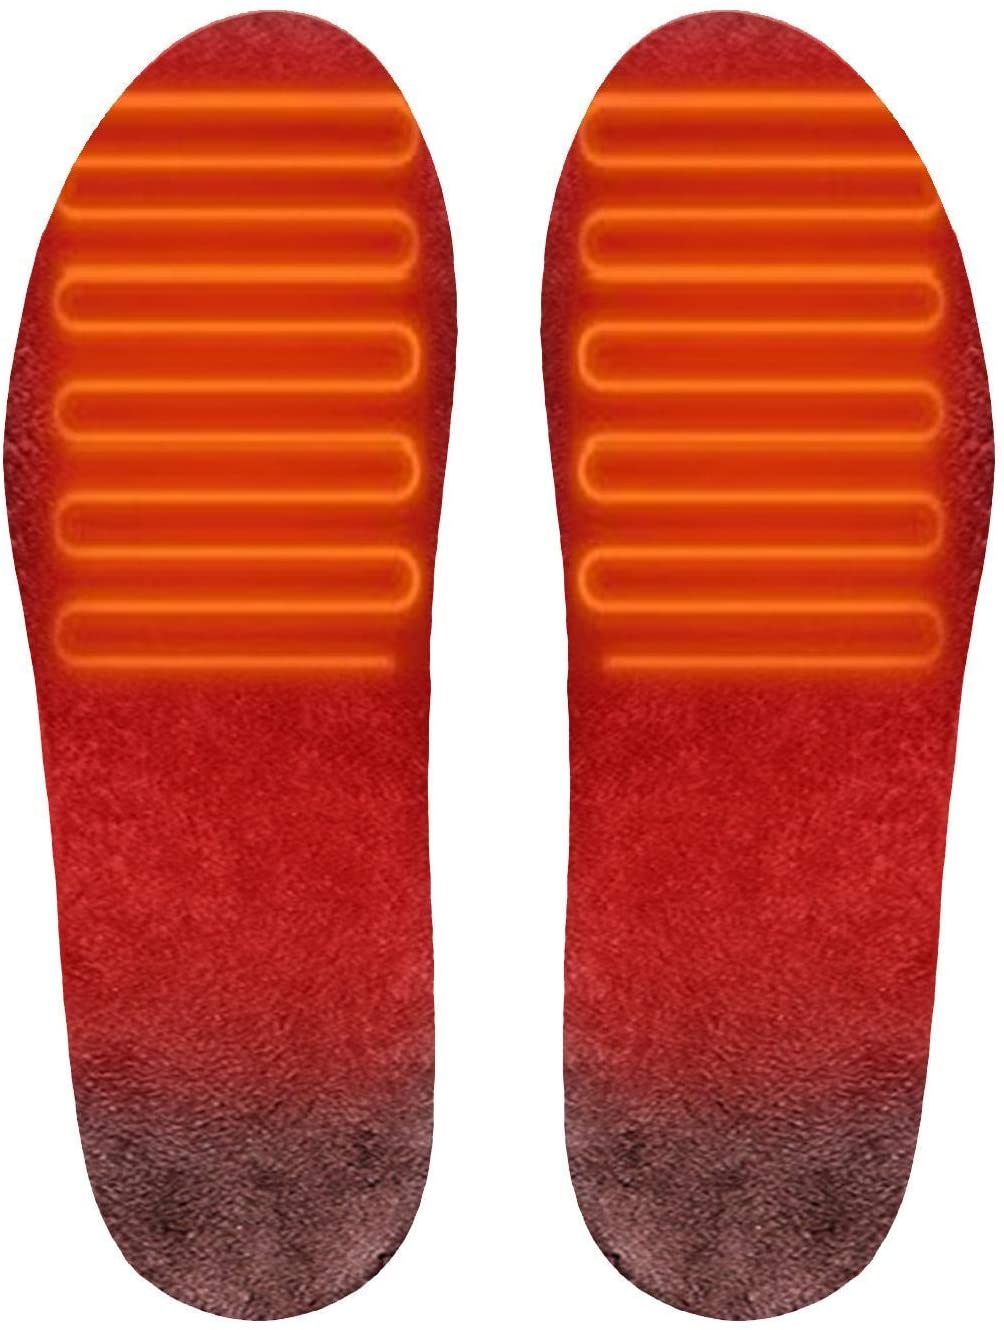 Heated Insoles USB Charging Heated Insoles,Electric Heating Insole Adjustable Washable Heating Insole Foot Warmer, Essential Products to Keep Warm in Winter